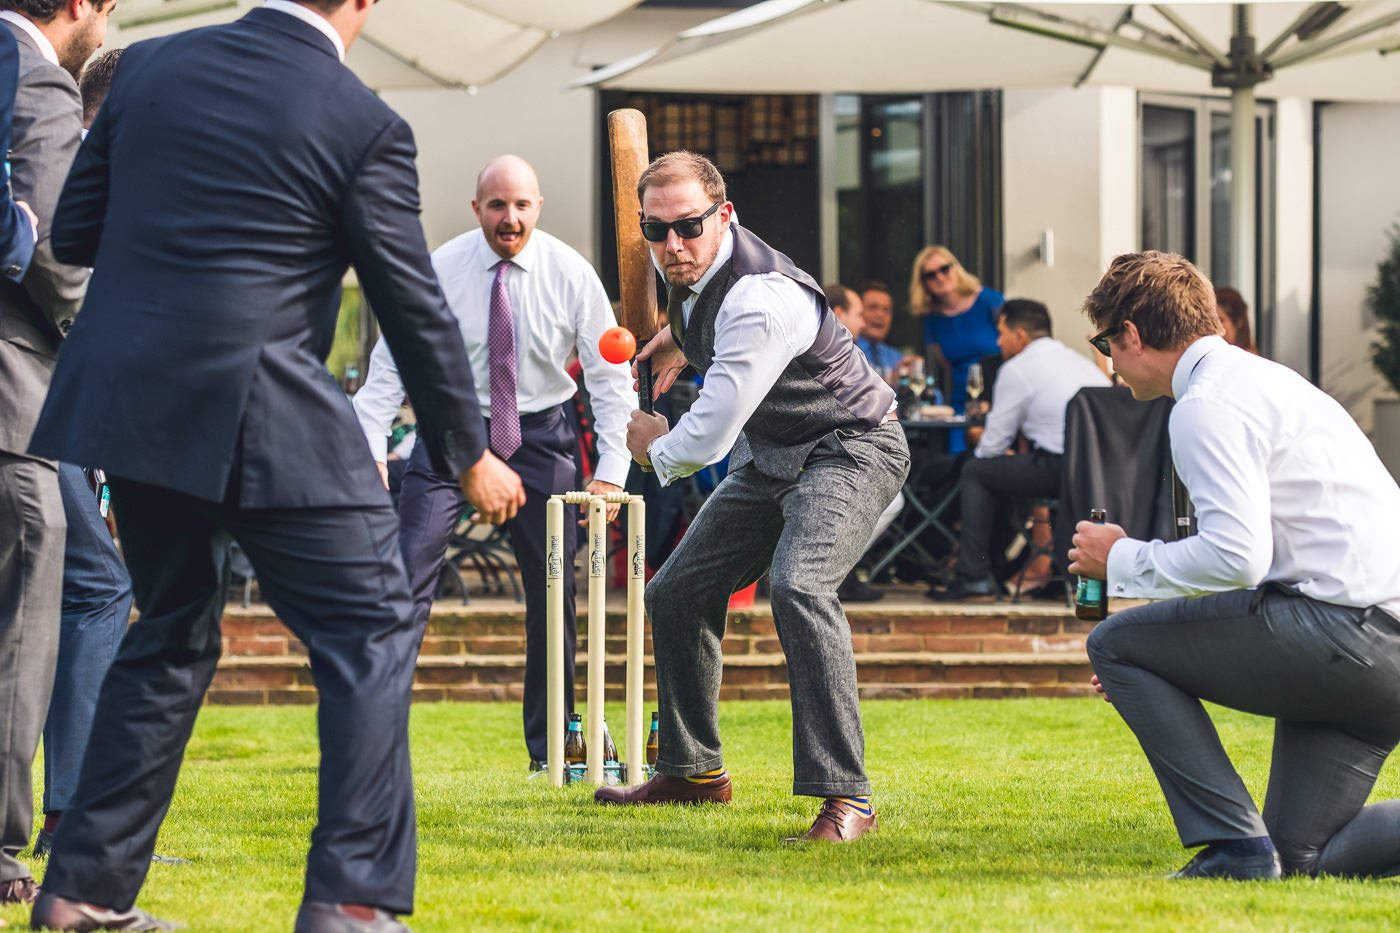 Groom playing cricket at wedding